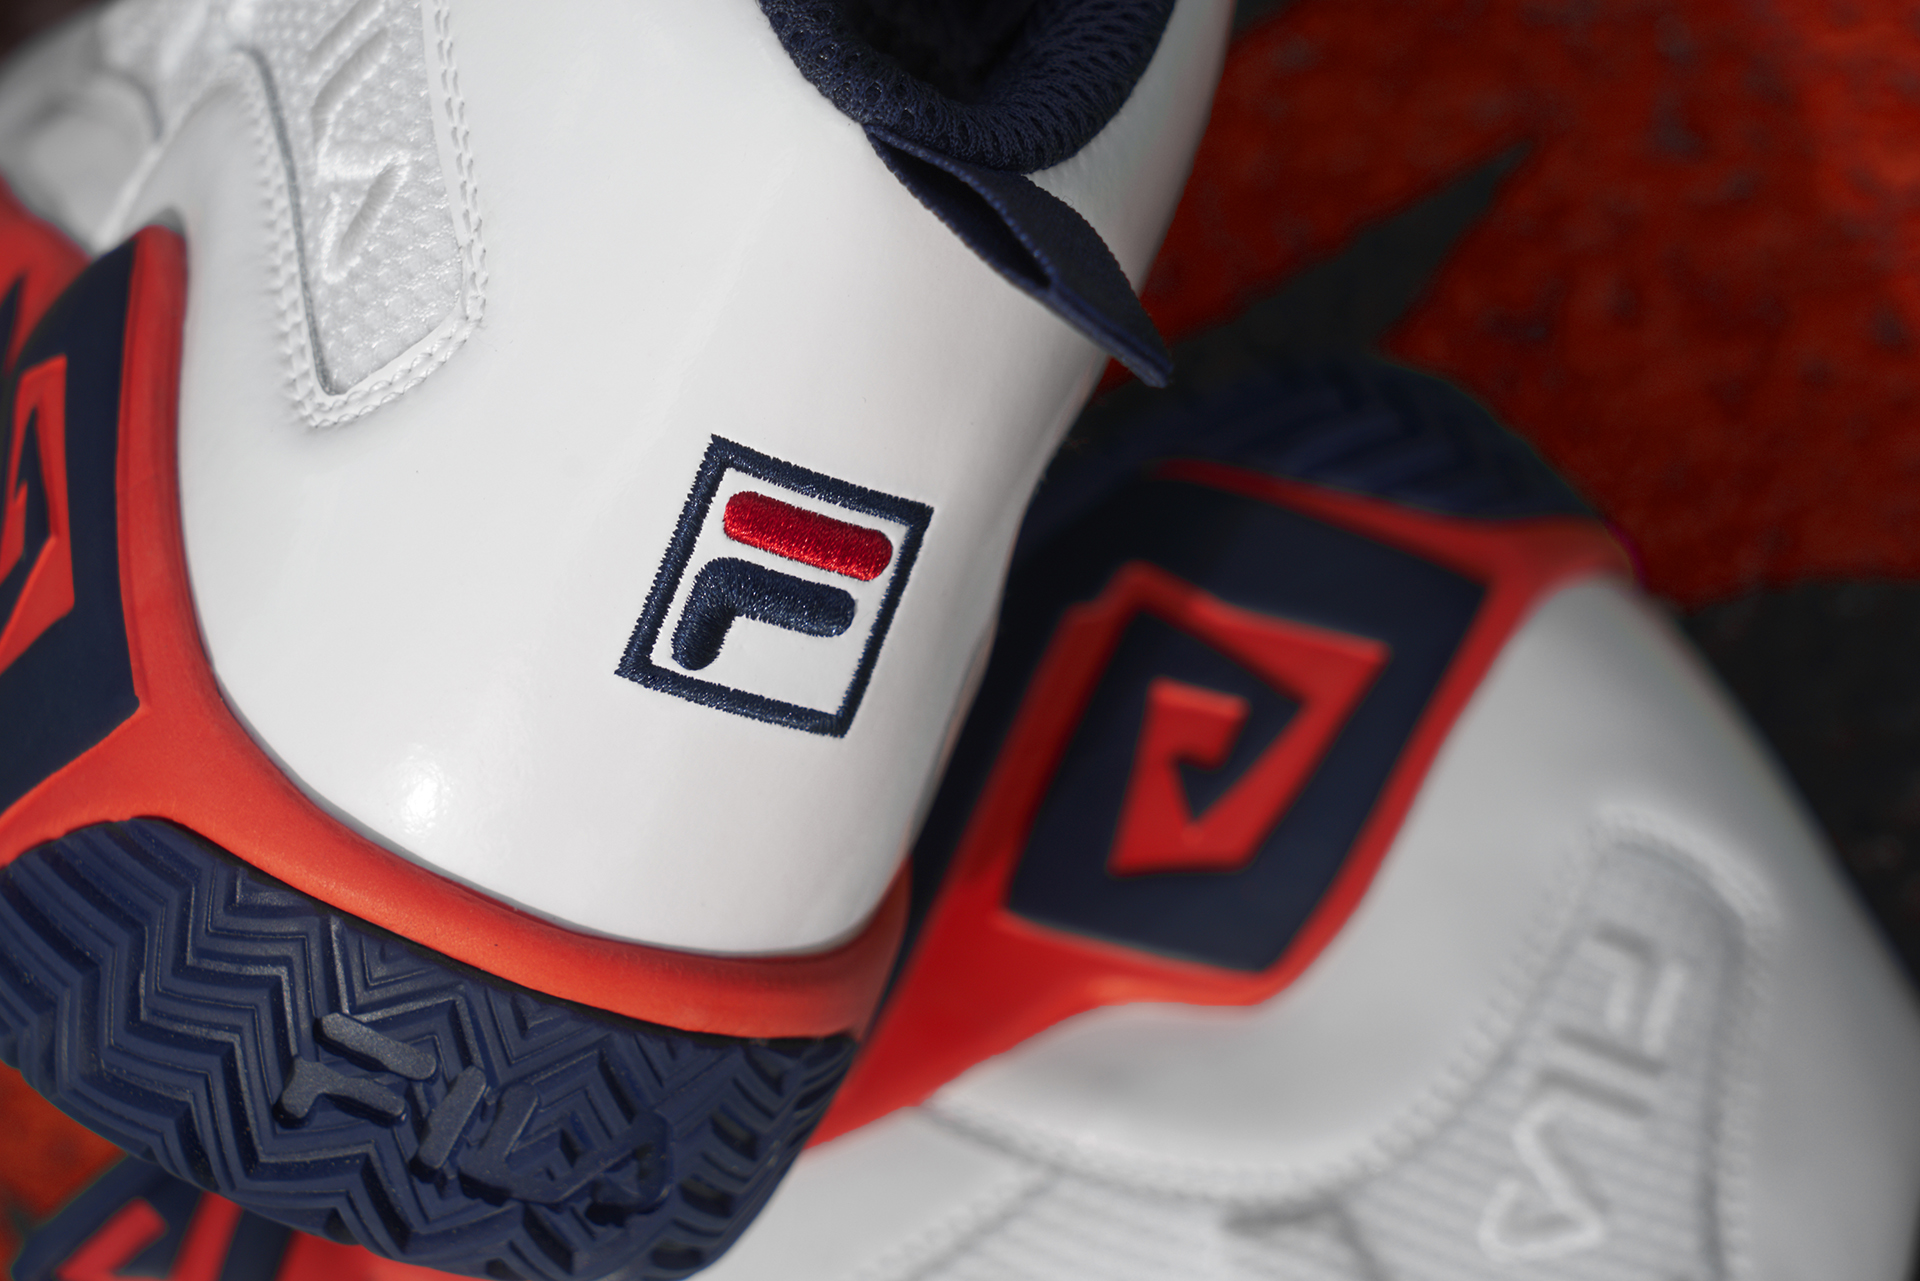 fila mb soaring summer pack close